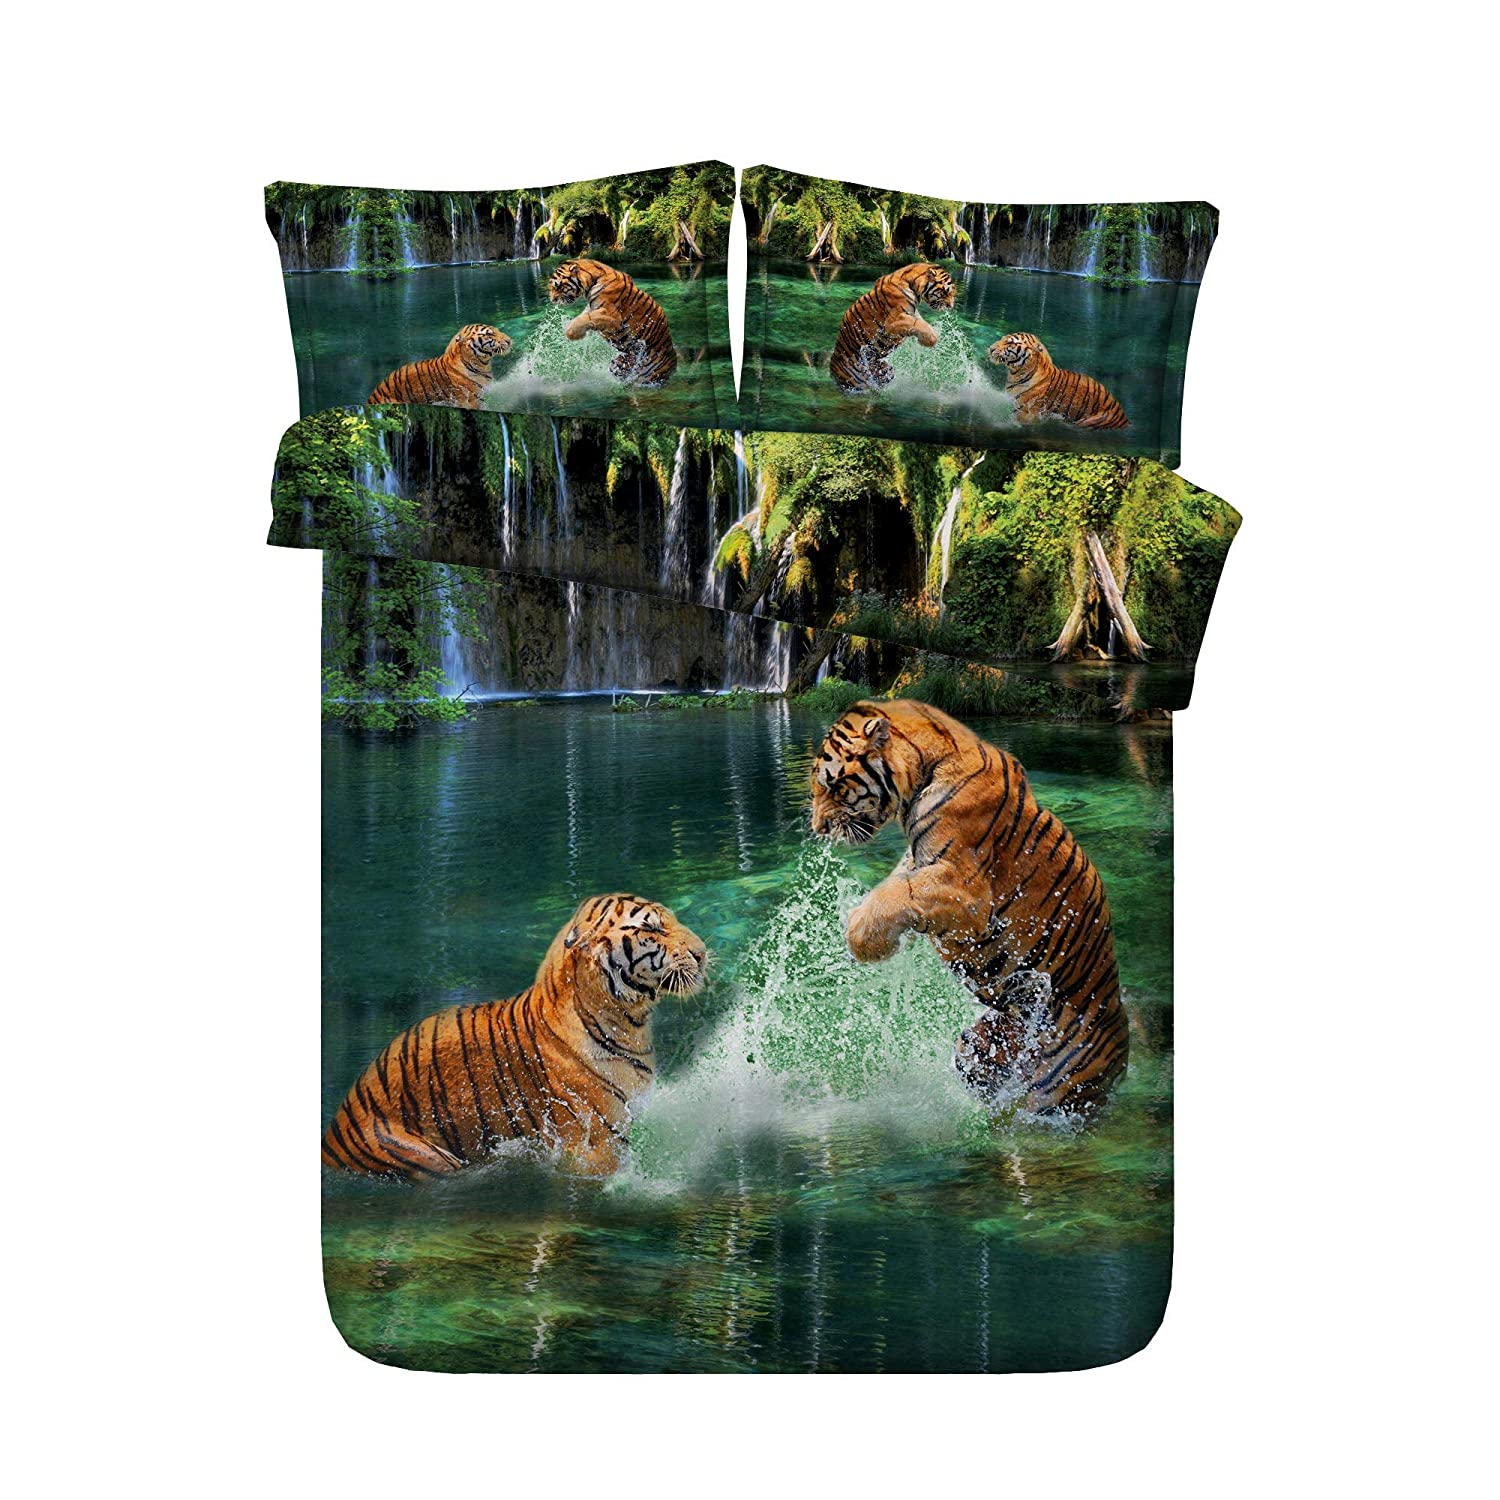 Royal Linen Source Drop Shipping 3PCS Amazing Tigers Playing in River 3D Animal Bed Set Twin Full Queen King Size (JF274, Twin)